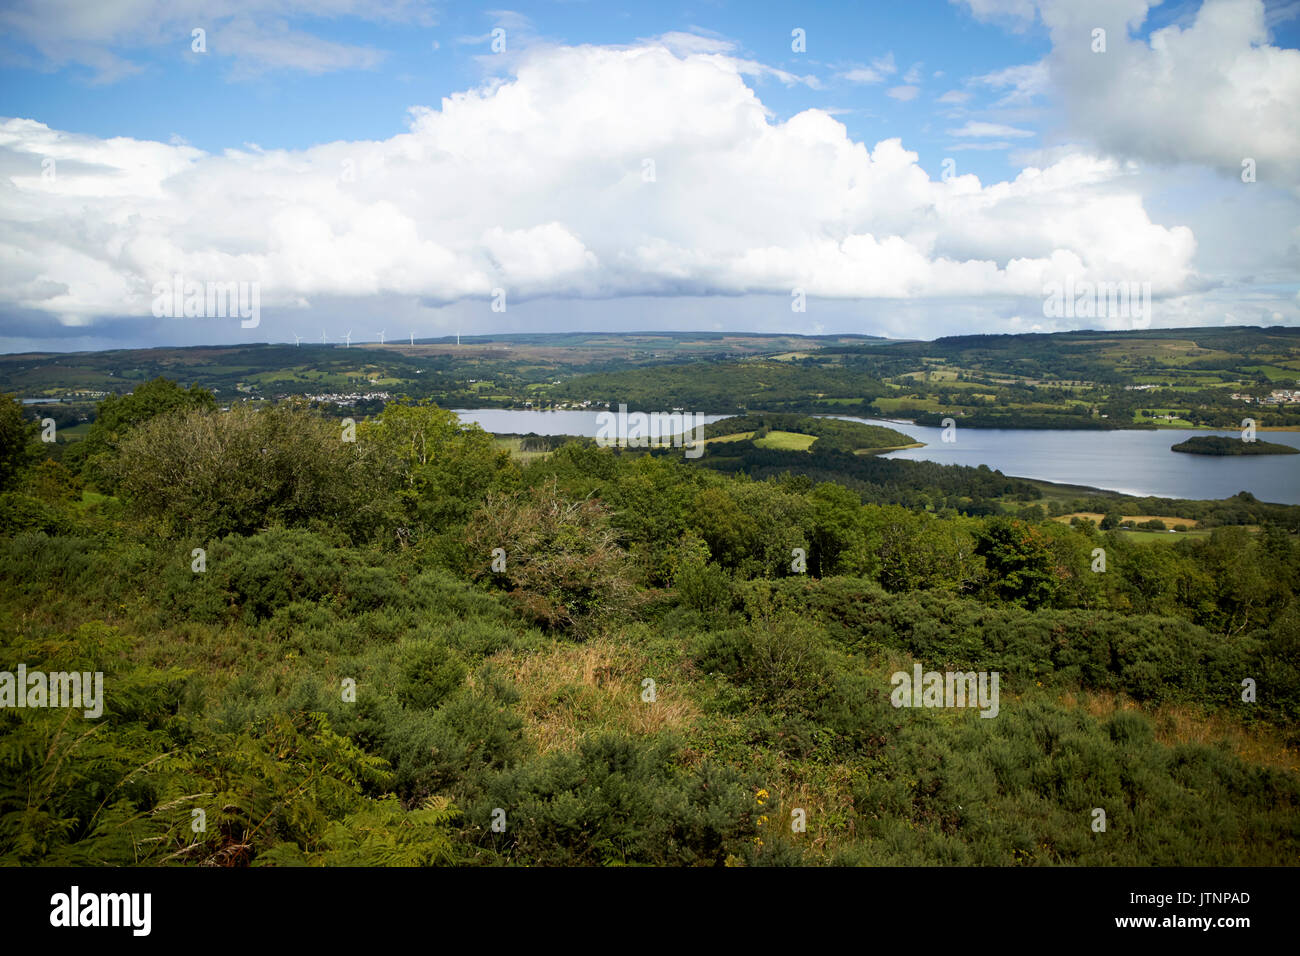 marlbank viewpoint over lough macnean scenic loop drive county fermanagh border country northern ireland - Stock Image